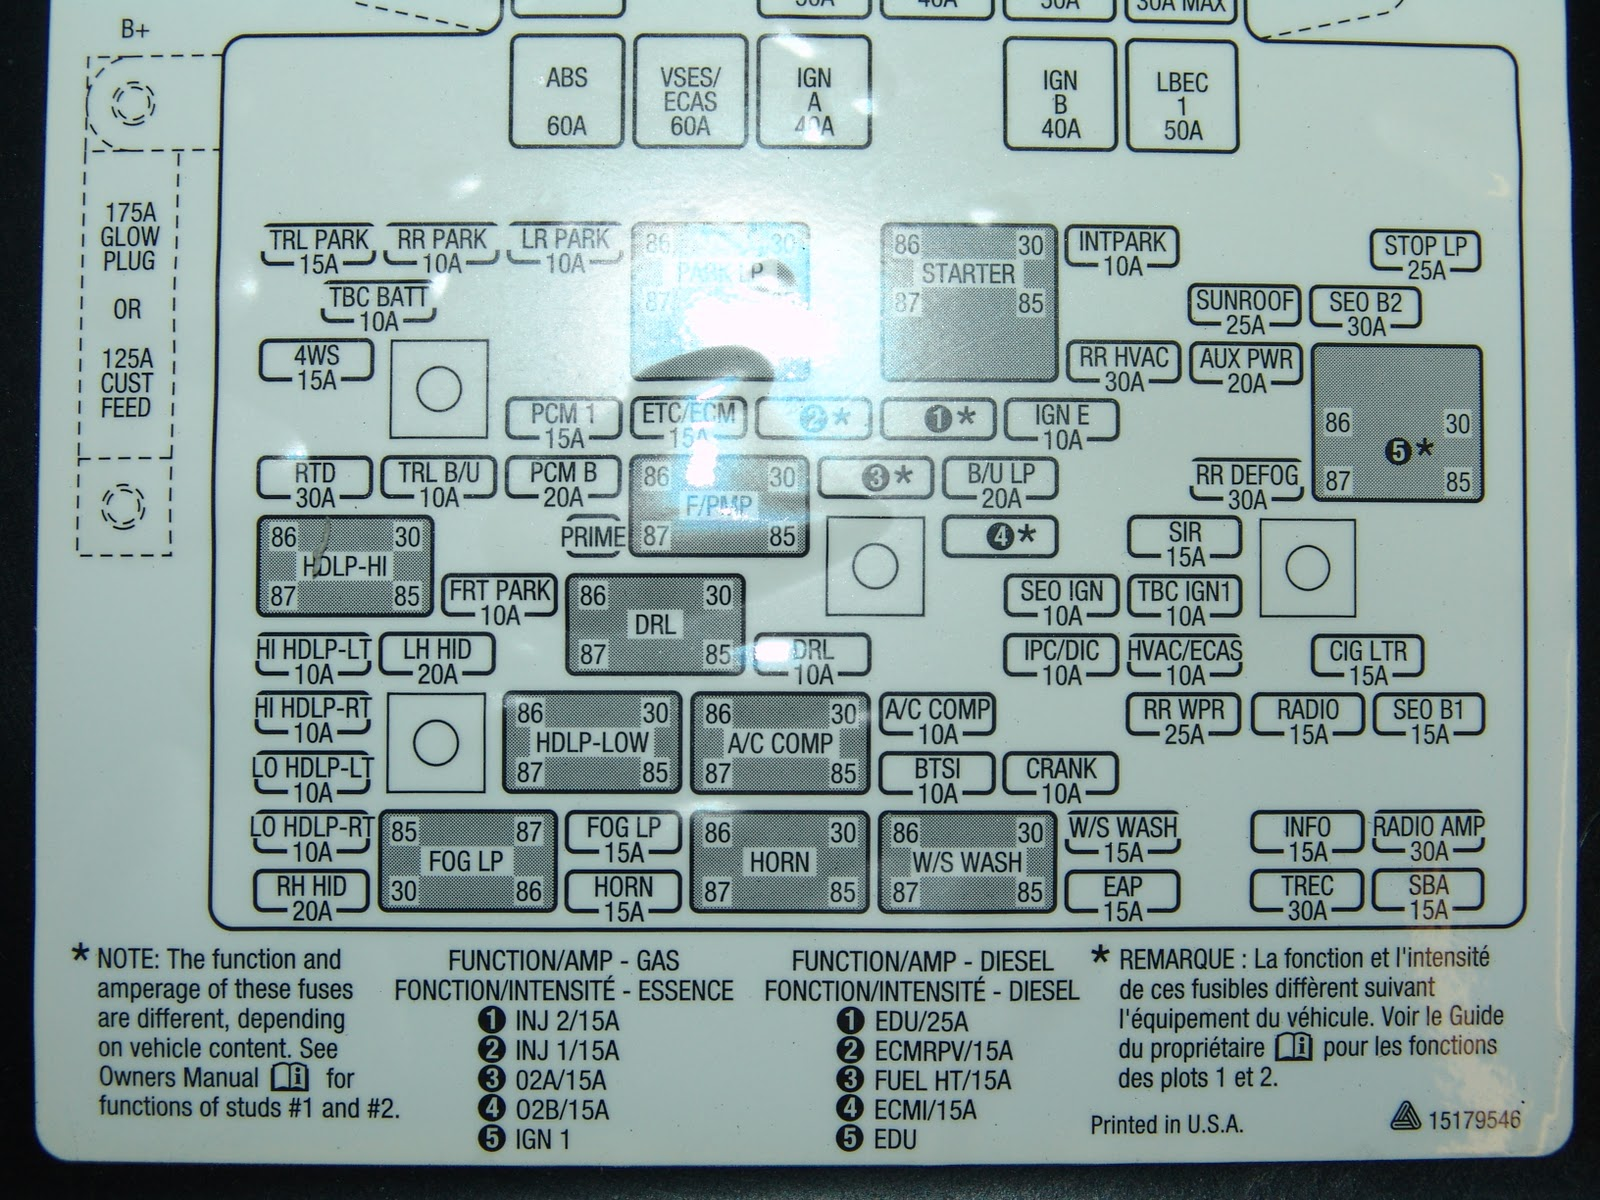 2006 Kenworth Fuse Panel Diagram Electrical Wiring Diagrams Wiper Schematics Circuit Symbols U2022 1984 Corvette